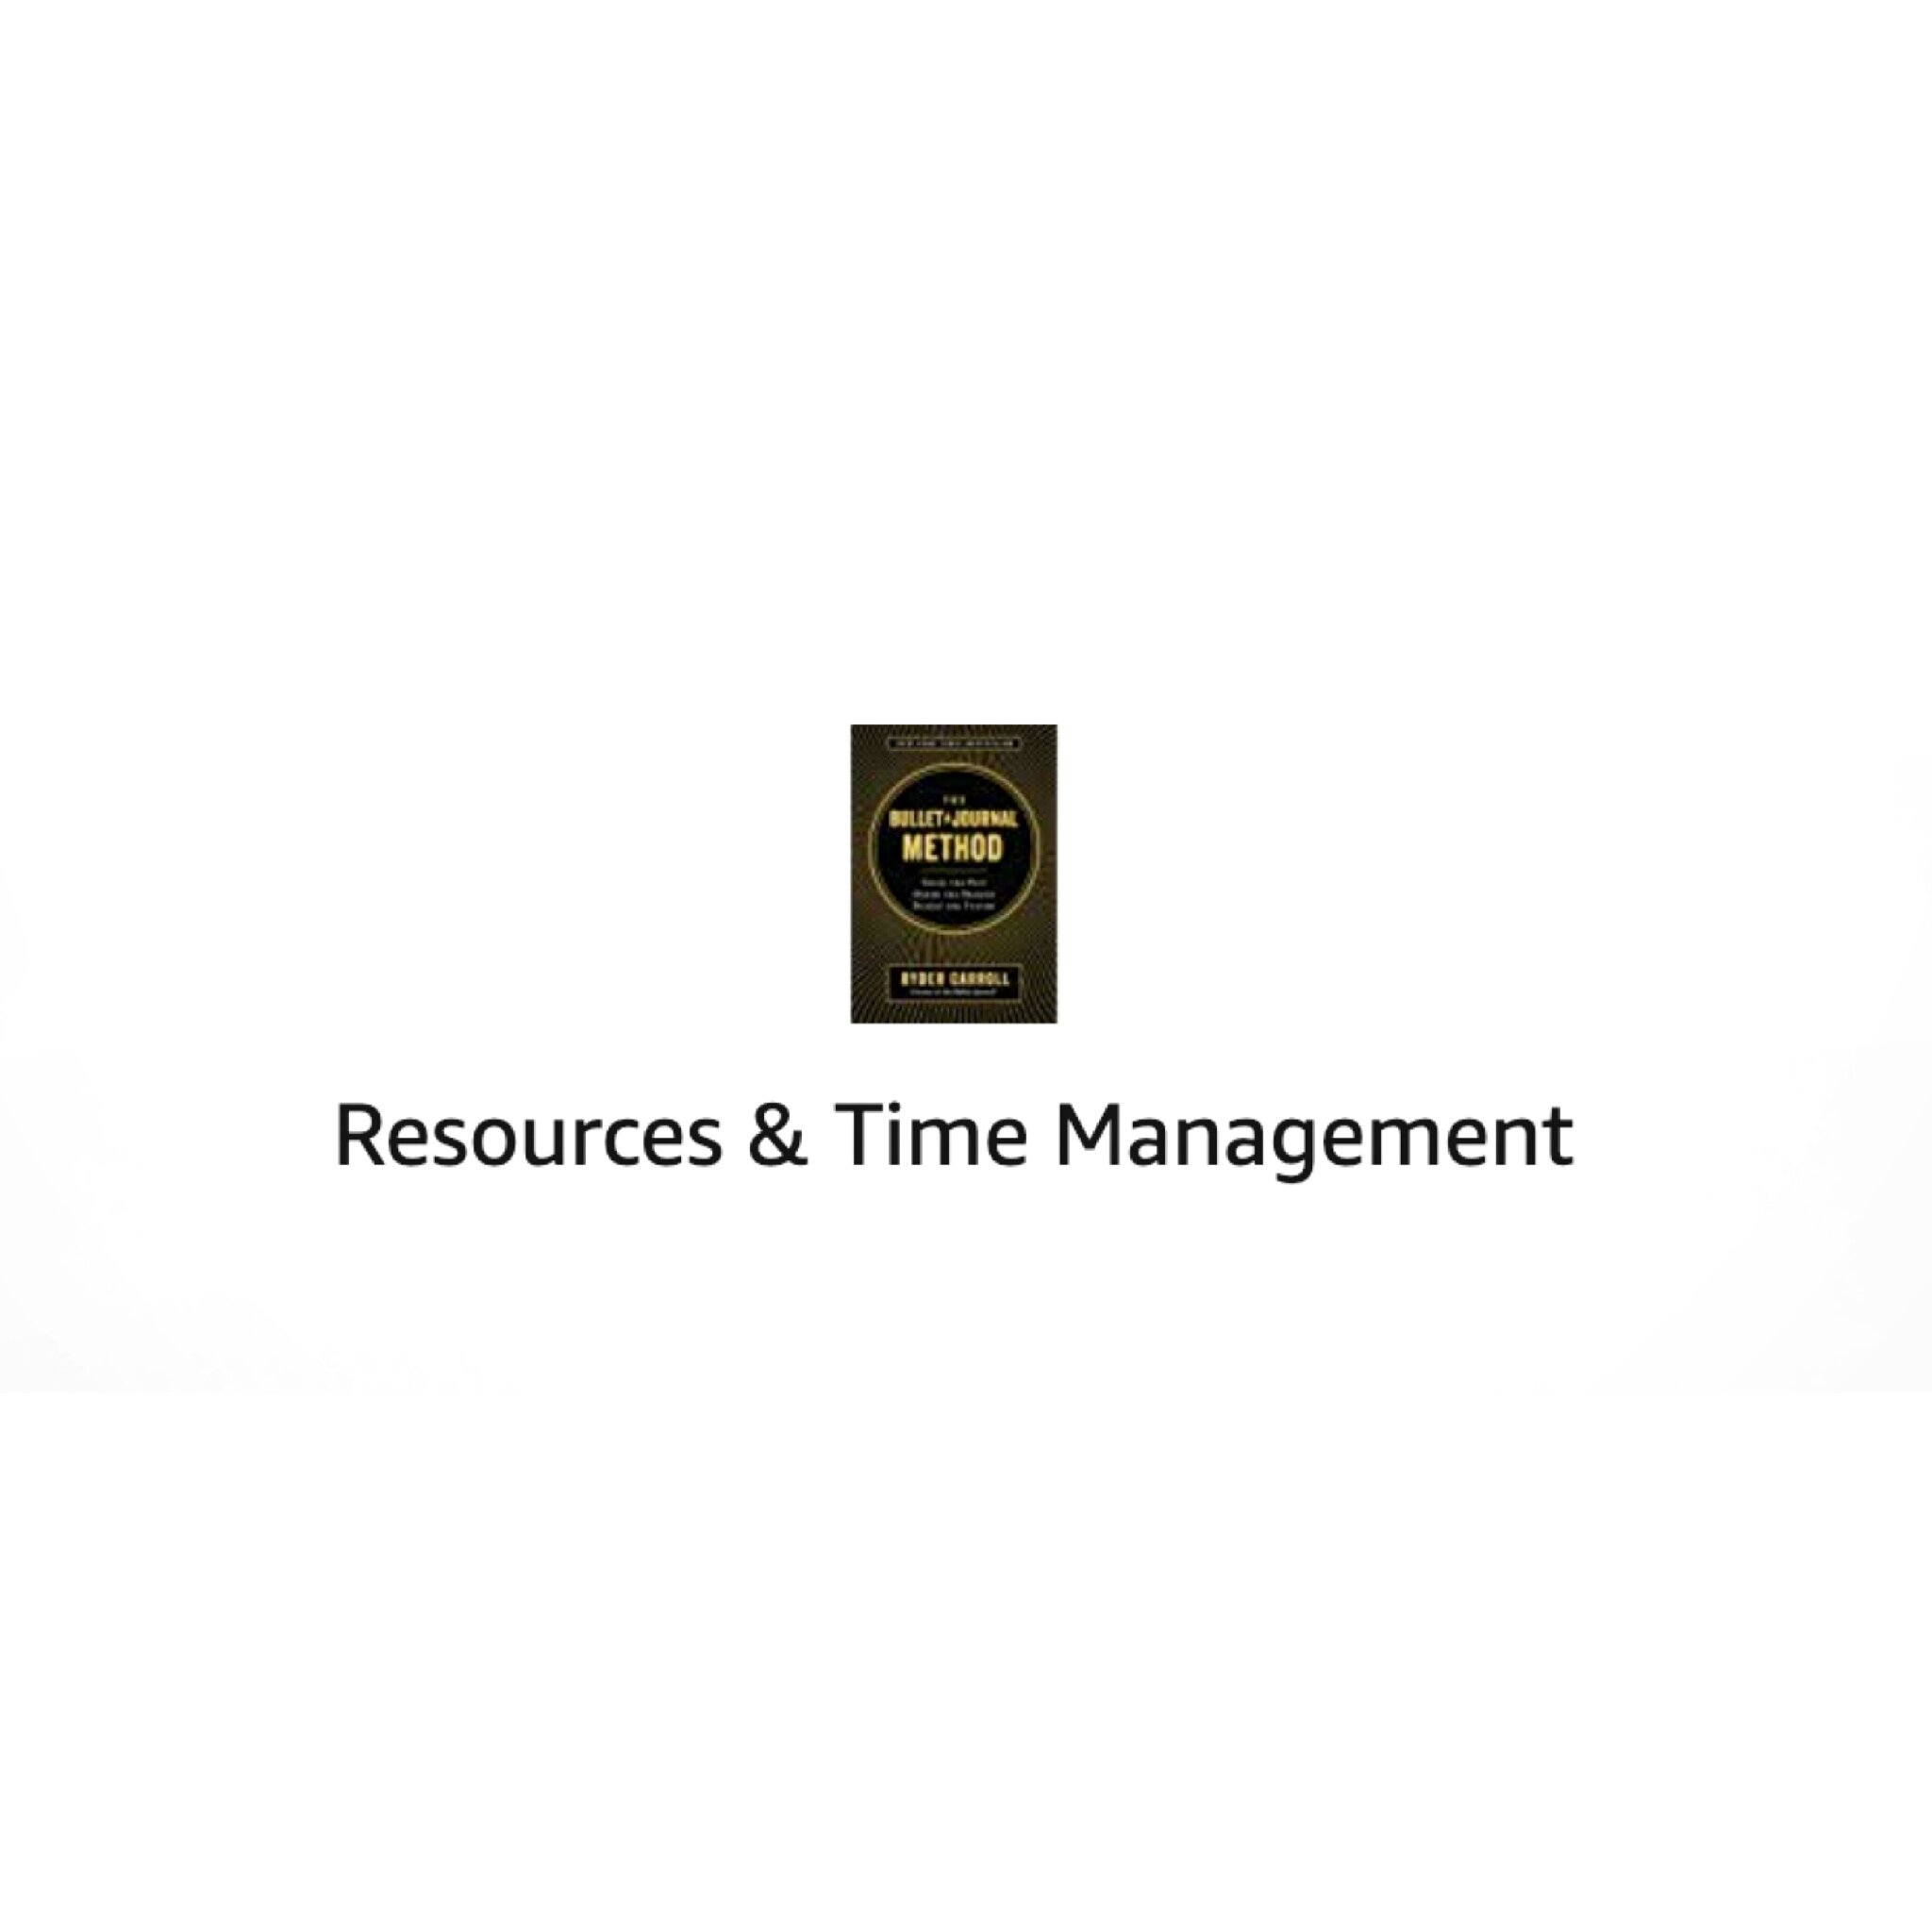 resources and time management